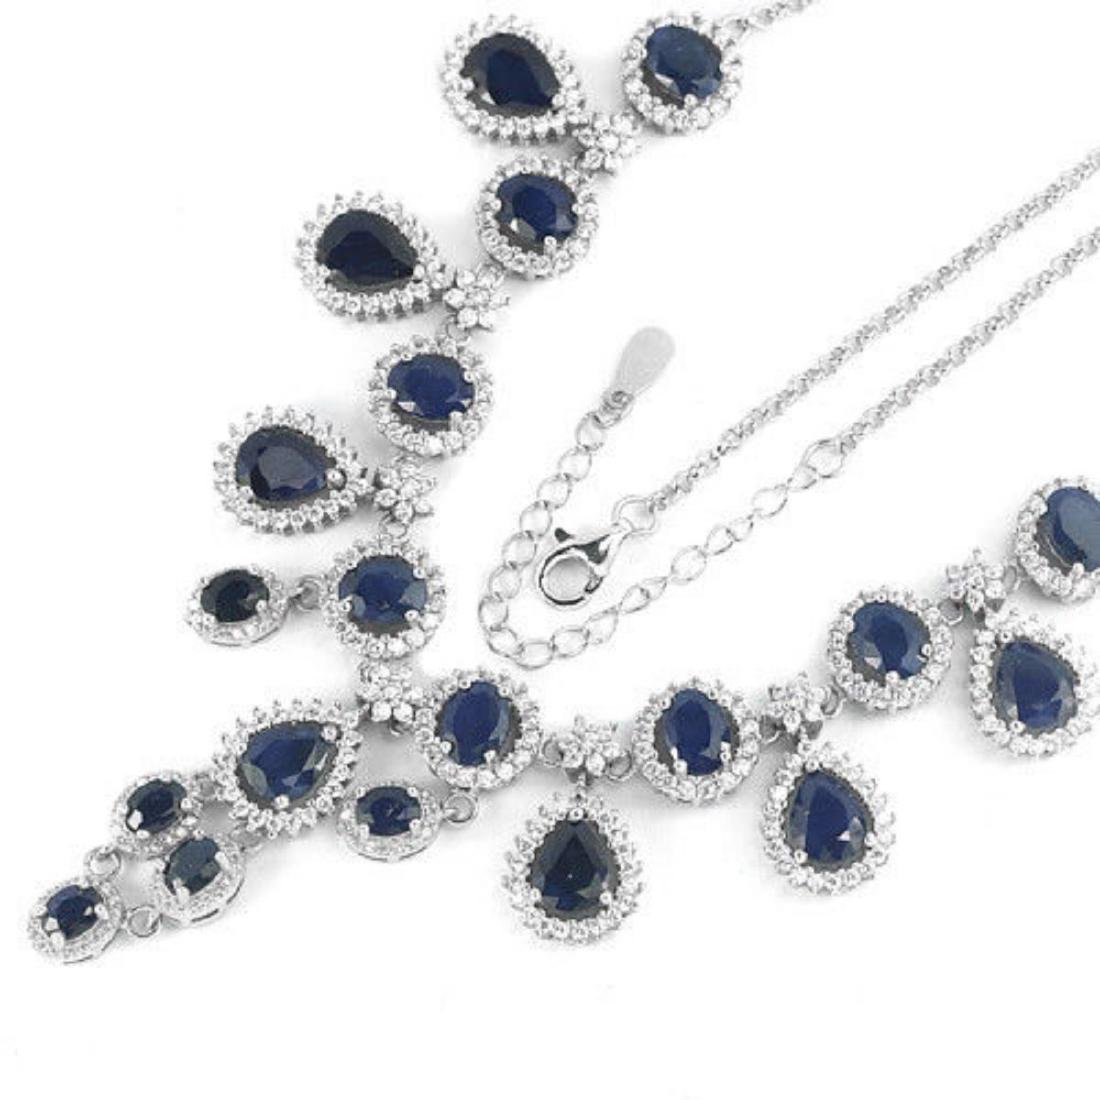 Natural BLUE SAPPHIRE 135 Ct Necklace - 2